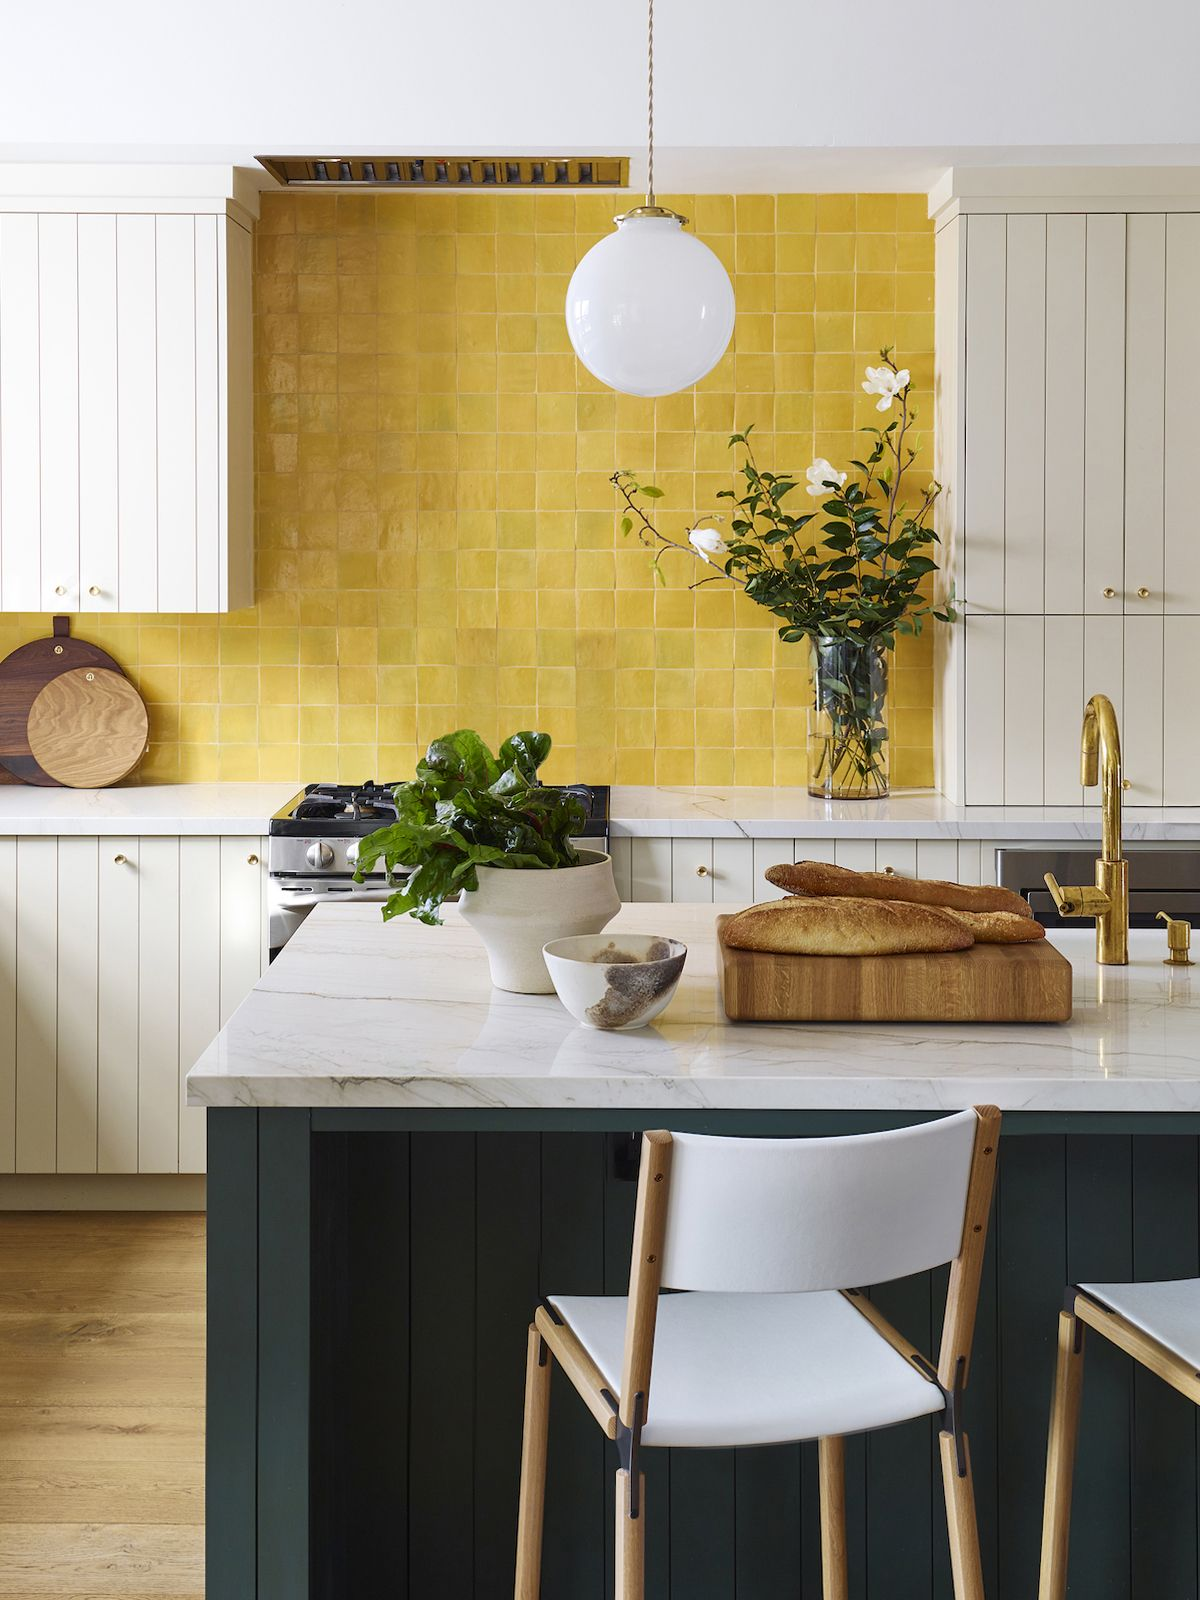 Room Of The Week A Bold Yellow Backsplash Makes This Kitchen